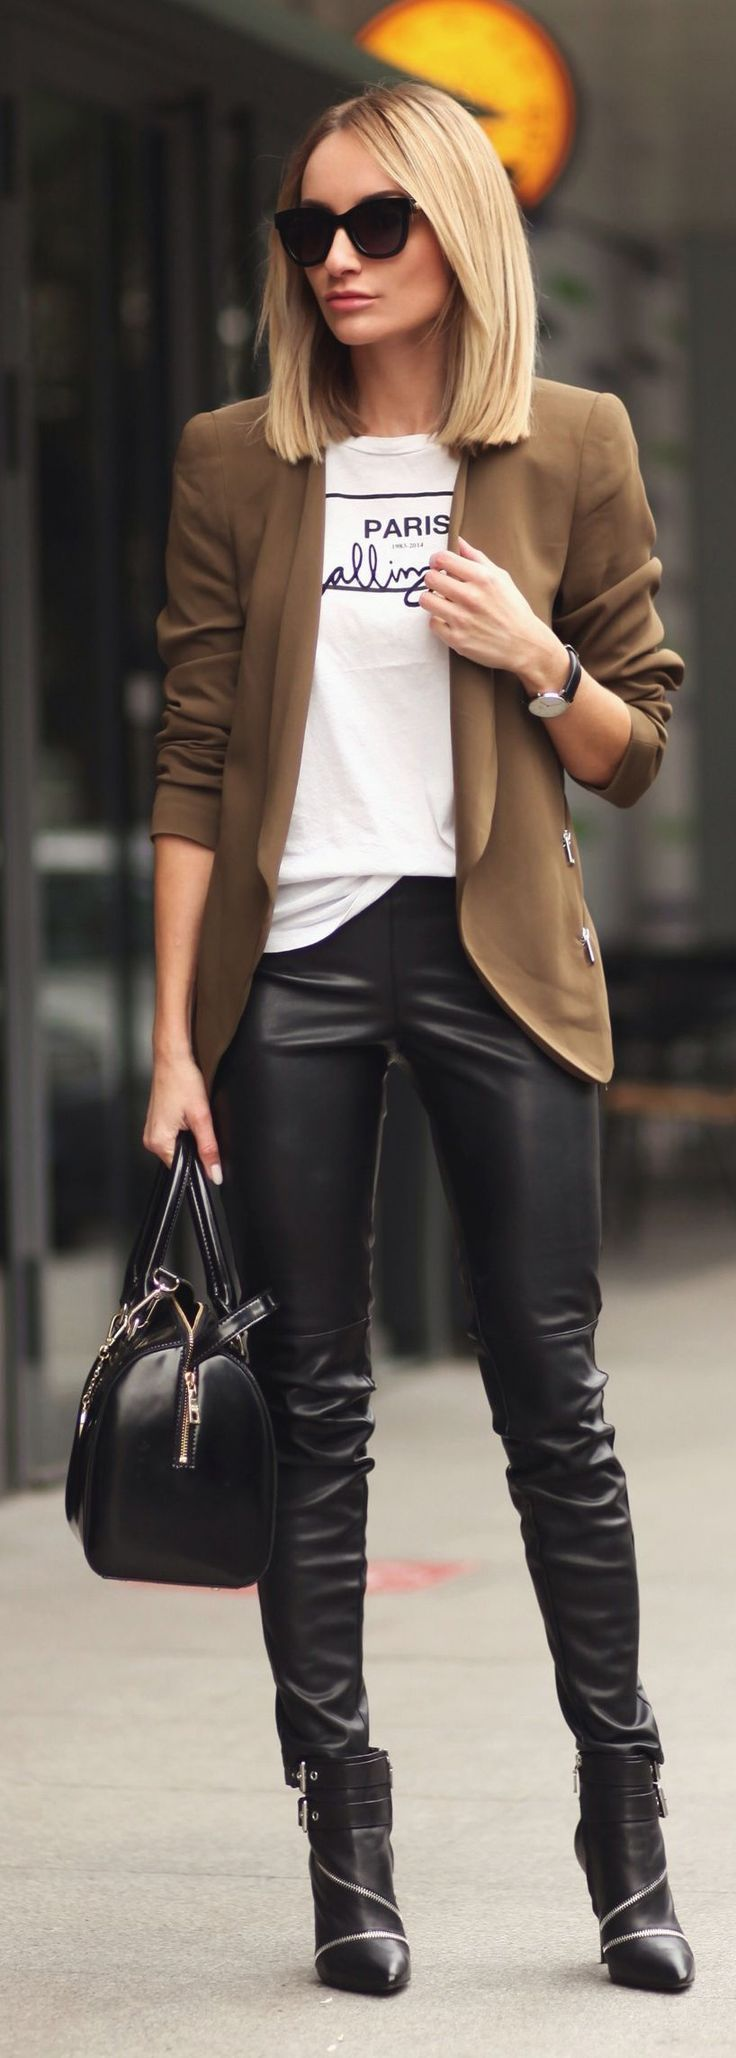 60 Trendy New Winter Fashion Styles